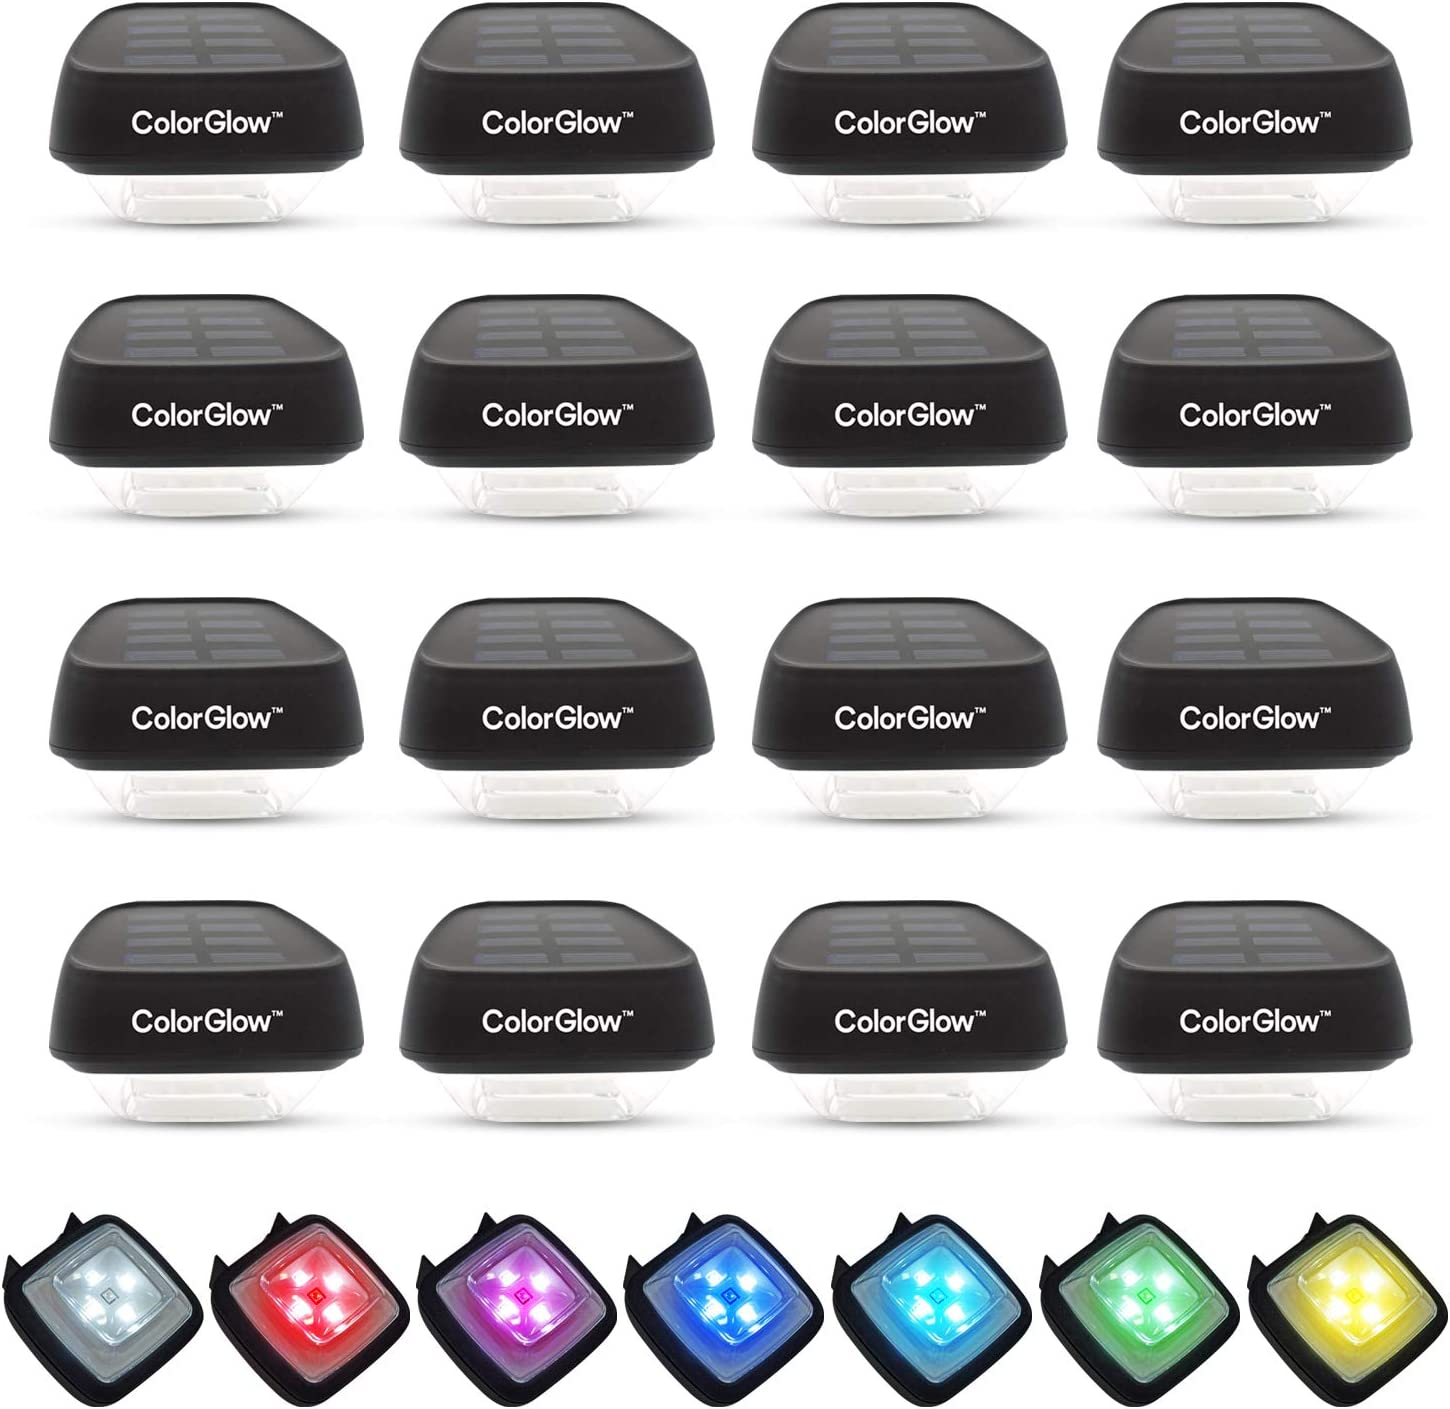 BRIGHTOLOGY ColorGlow Waterproof Outdoor Solar Rainbow Lights (16 Lights) Water Resistant Solar Powered Landscape Lighting for Gutter, Fence, Patio, Garden, Wall, Yard, Attic, or Walkway